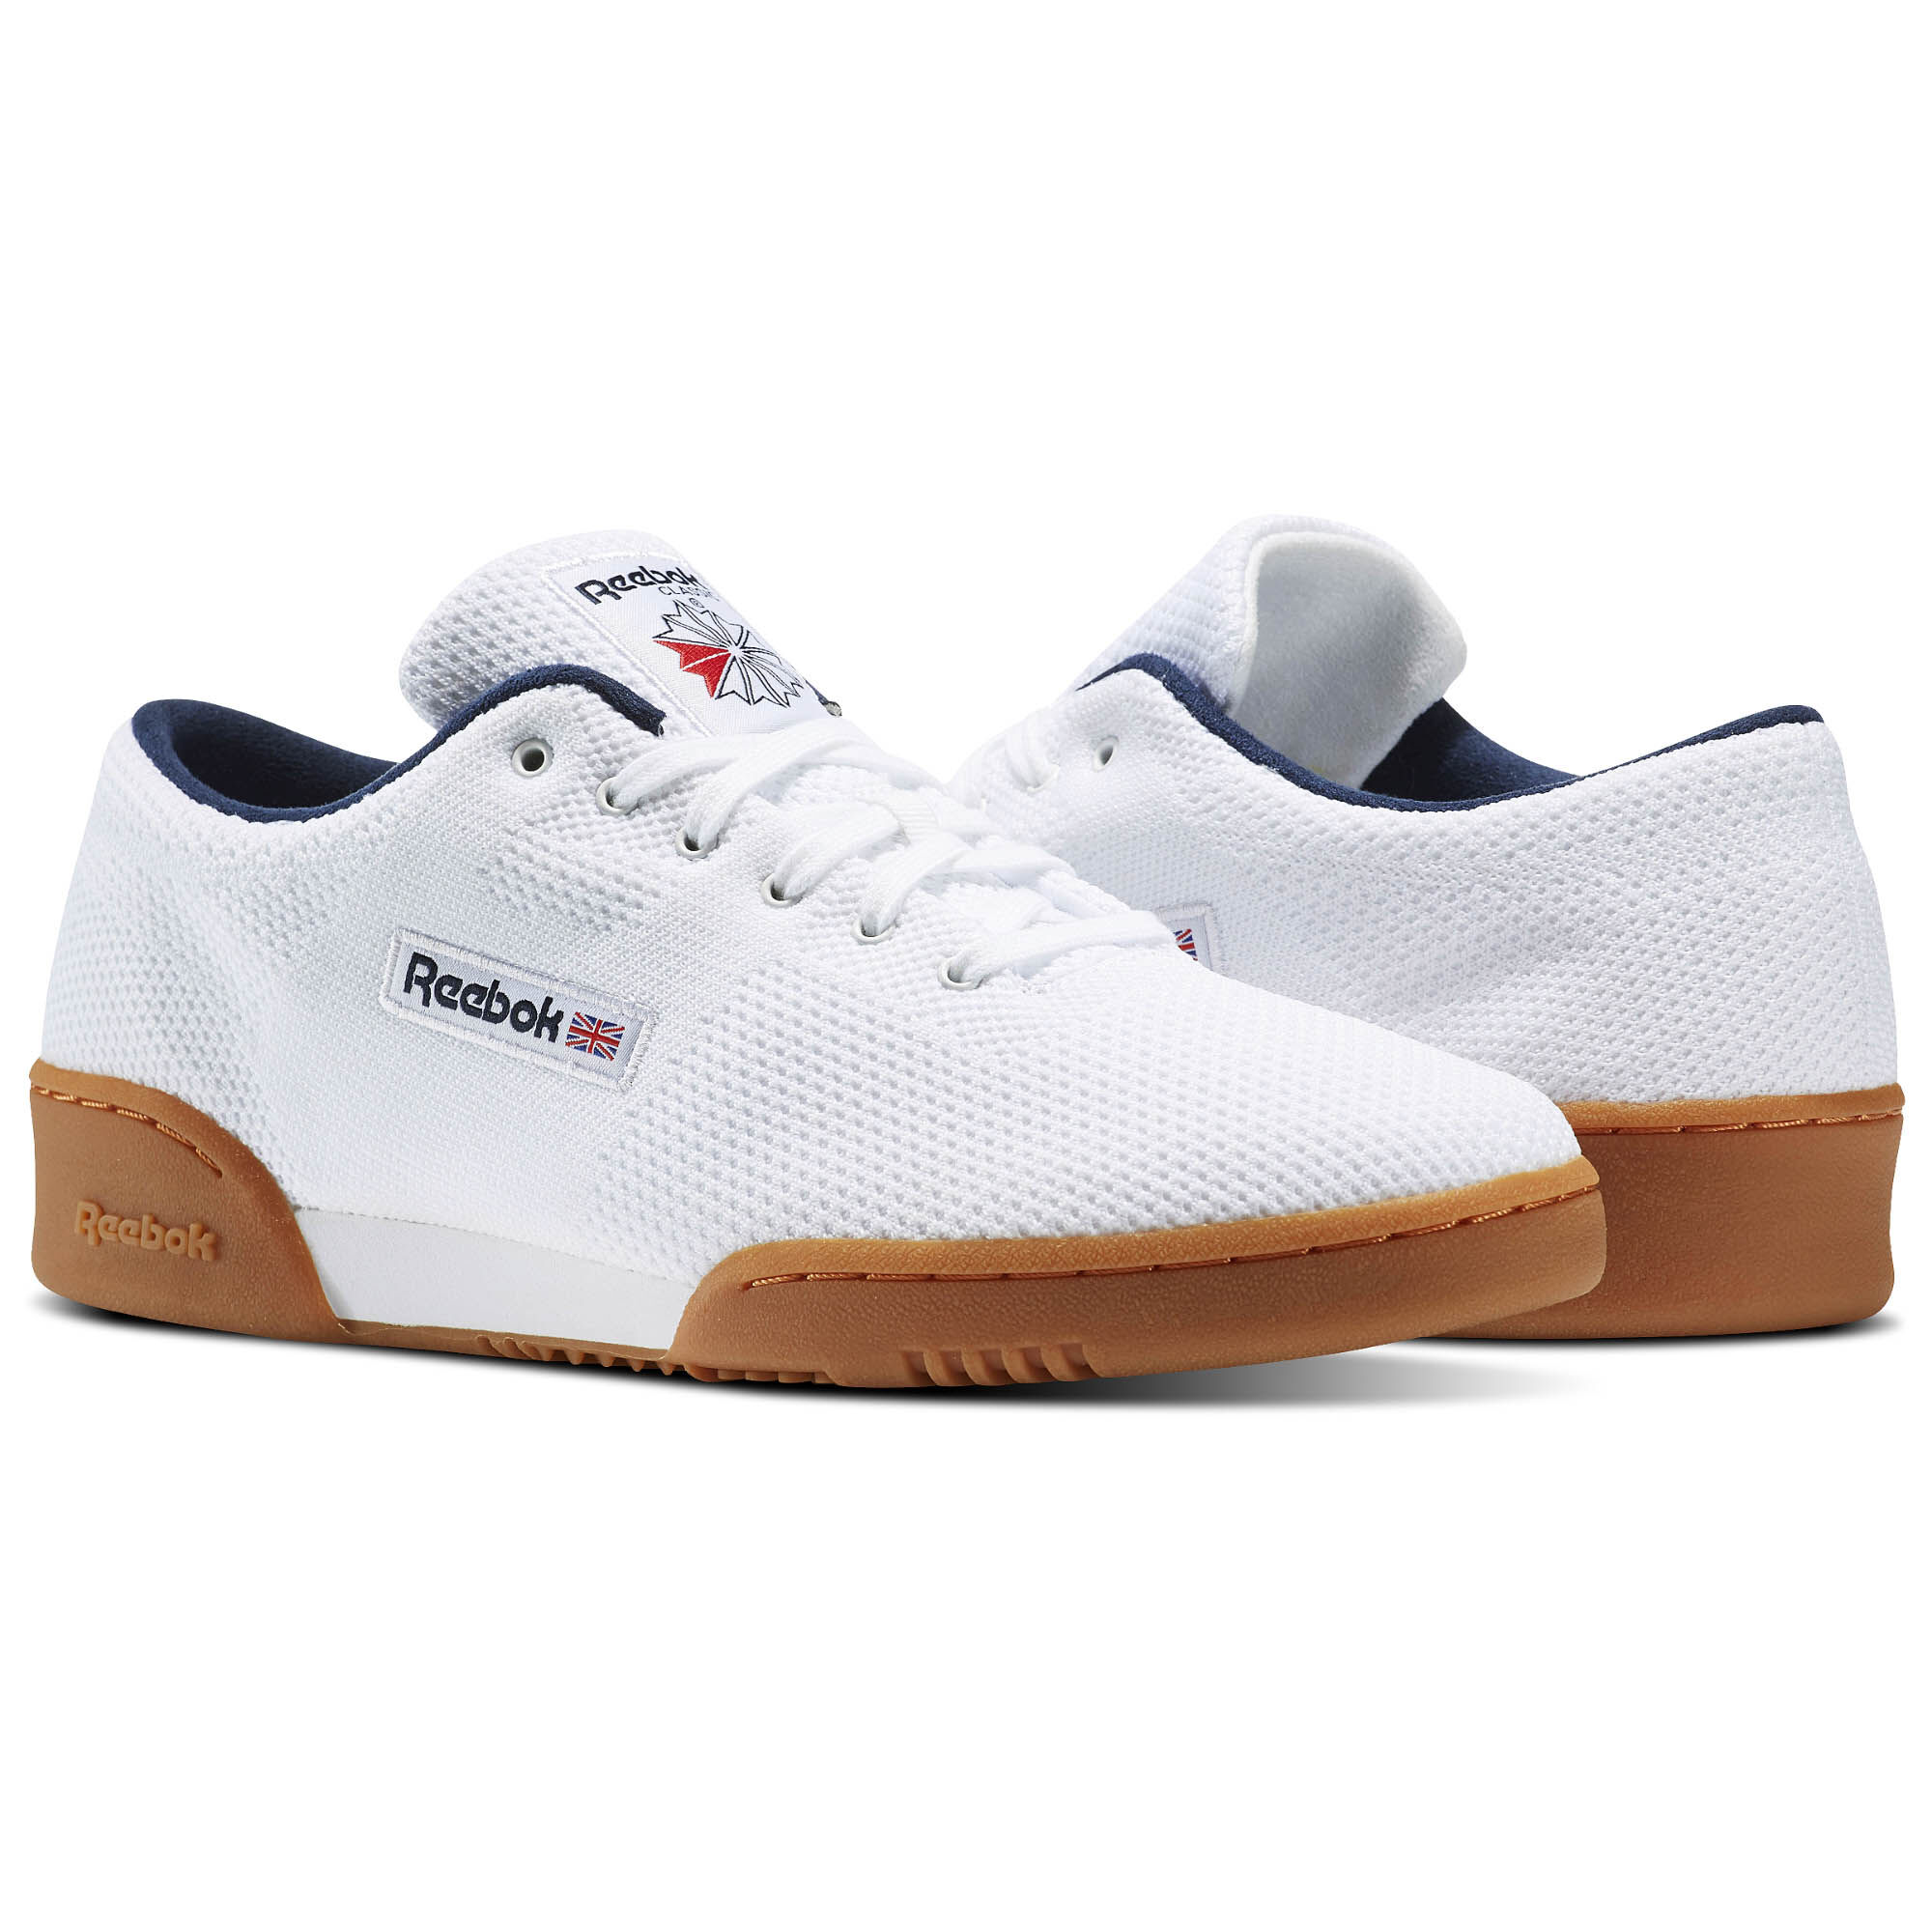 white workout 85 TXT leather sneakers Reebok vYnSPUGf4